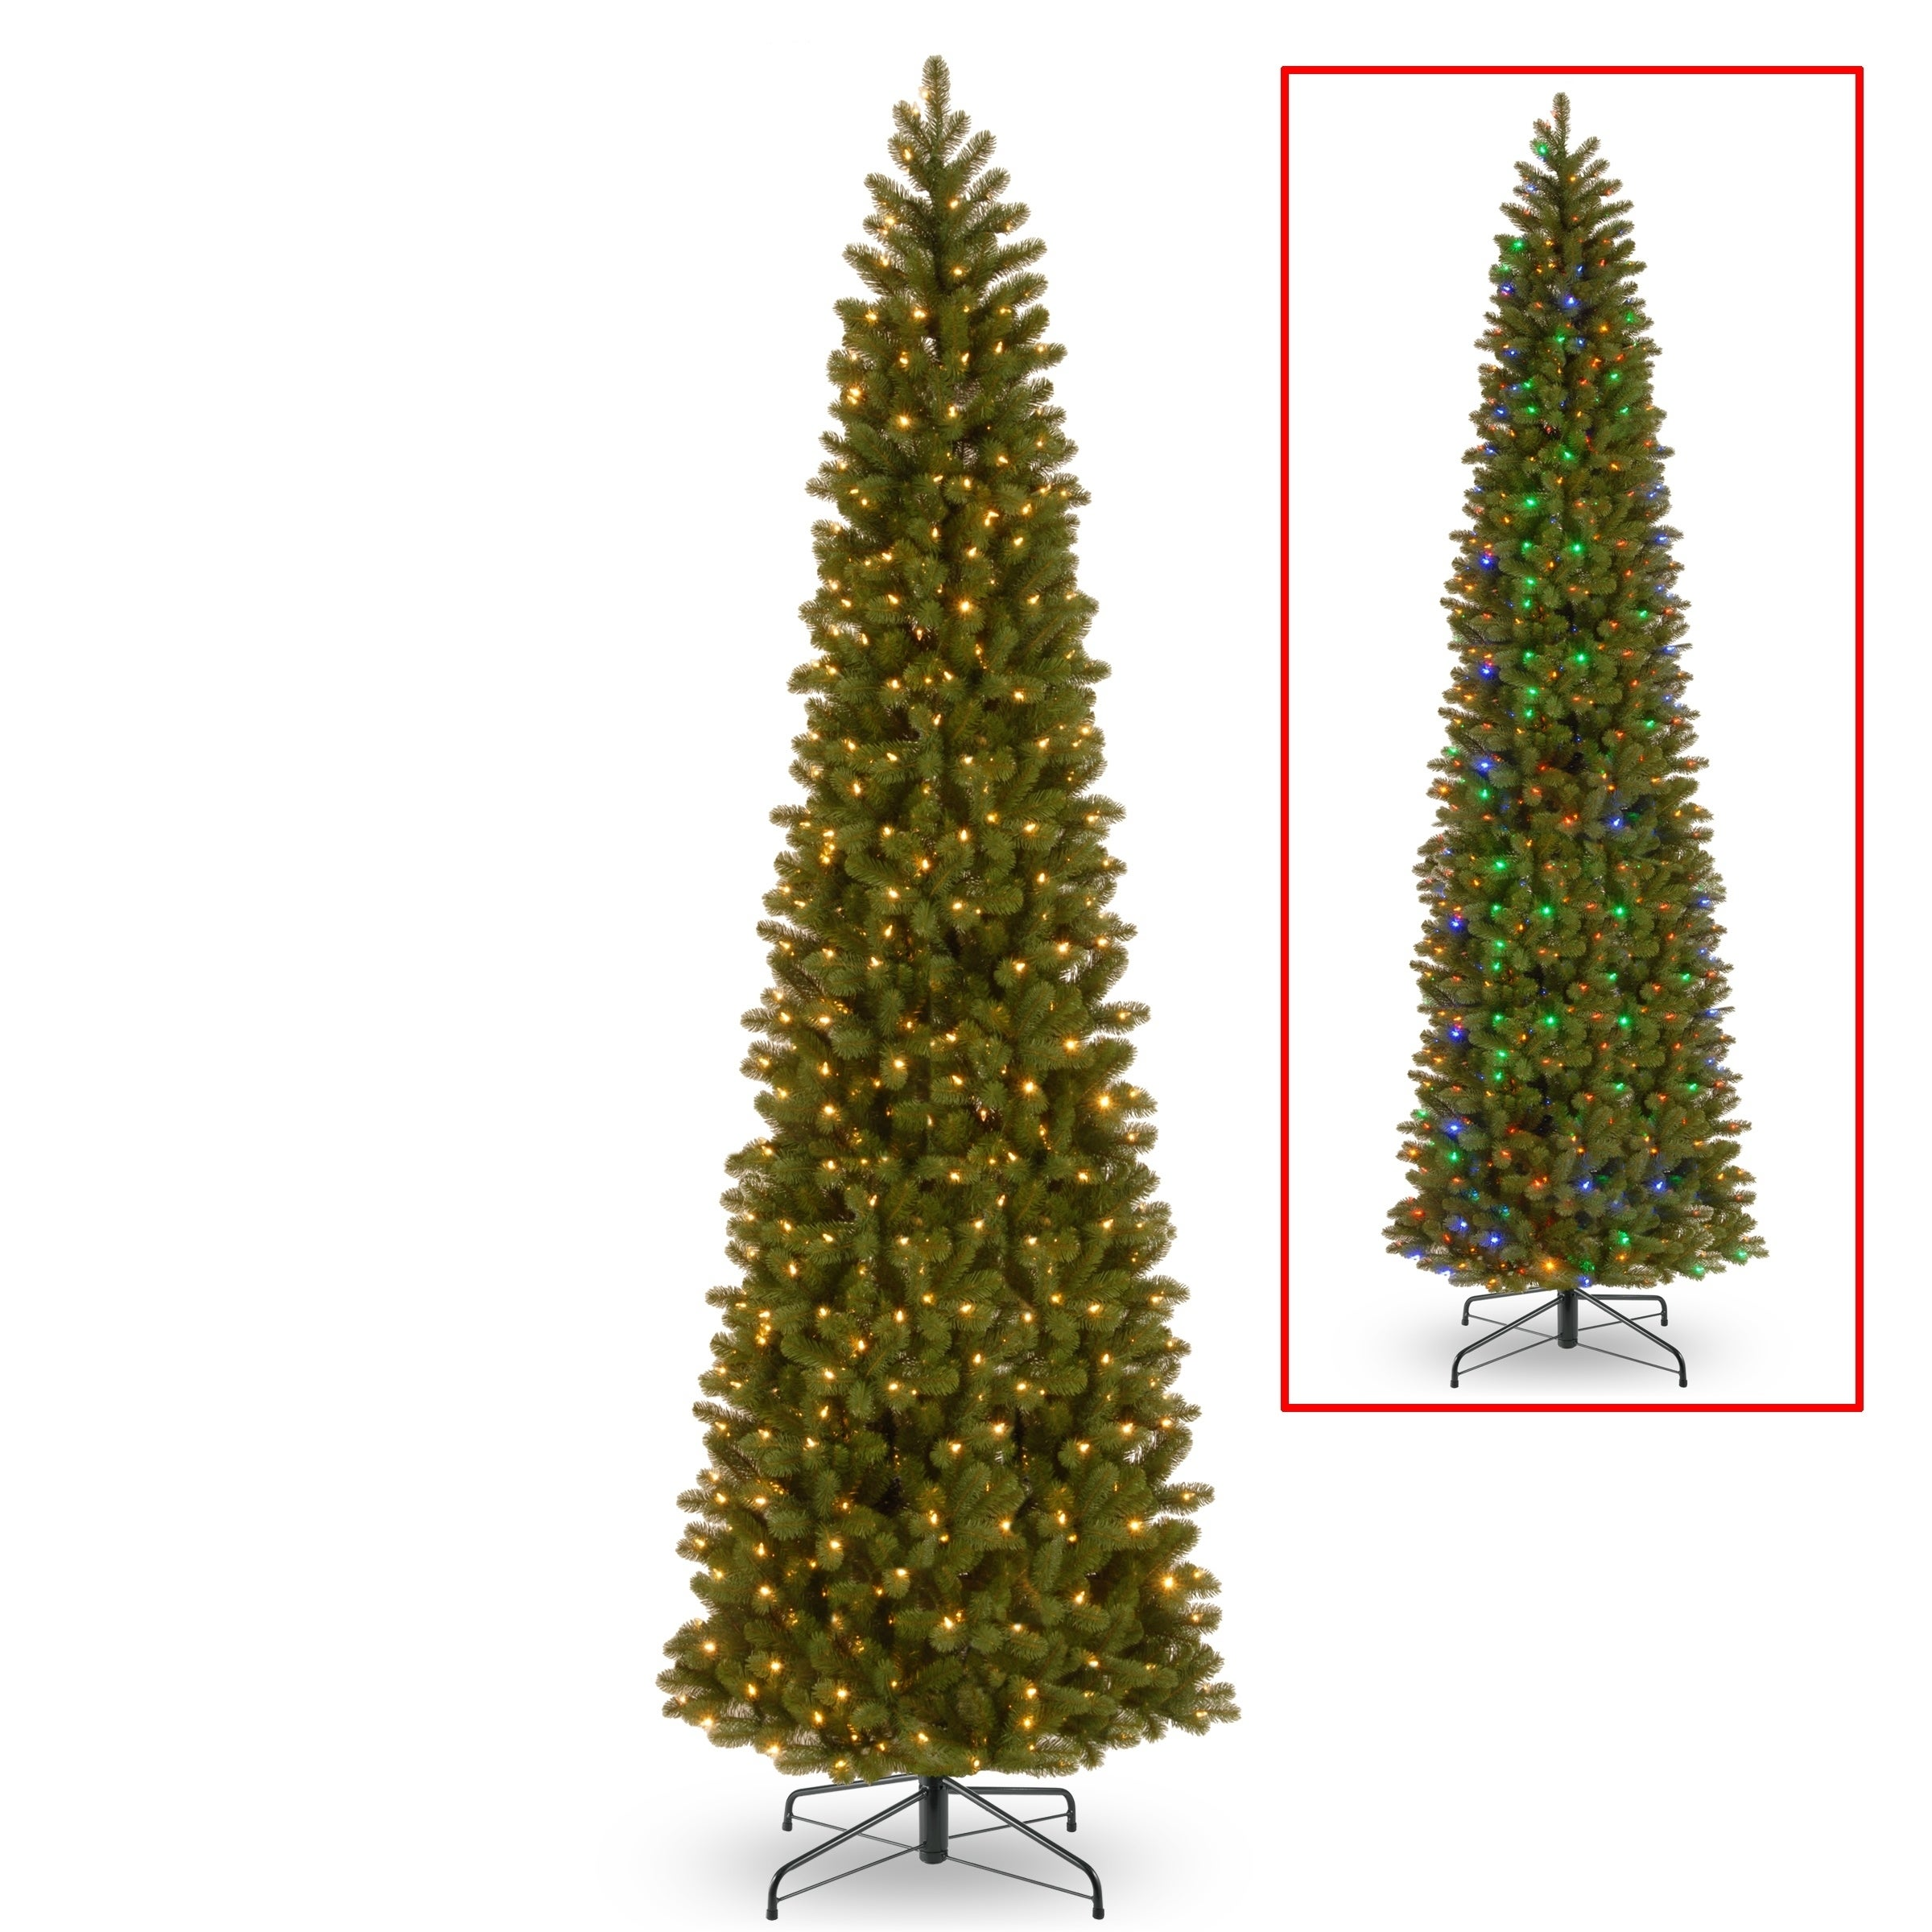 892d109b7113 Shop 12 ft. Downswept Douglas Pencil Slim Fir Tree with Dual Color® LED  Lights - Free Shipping Today - Overstock - 17277681